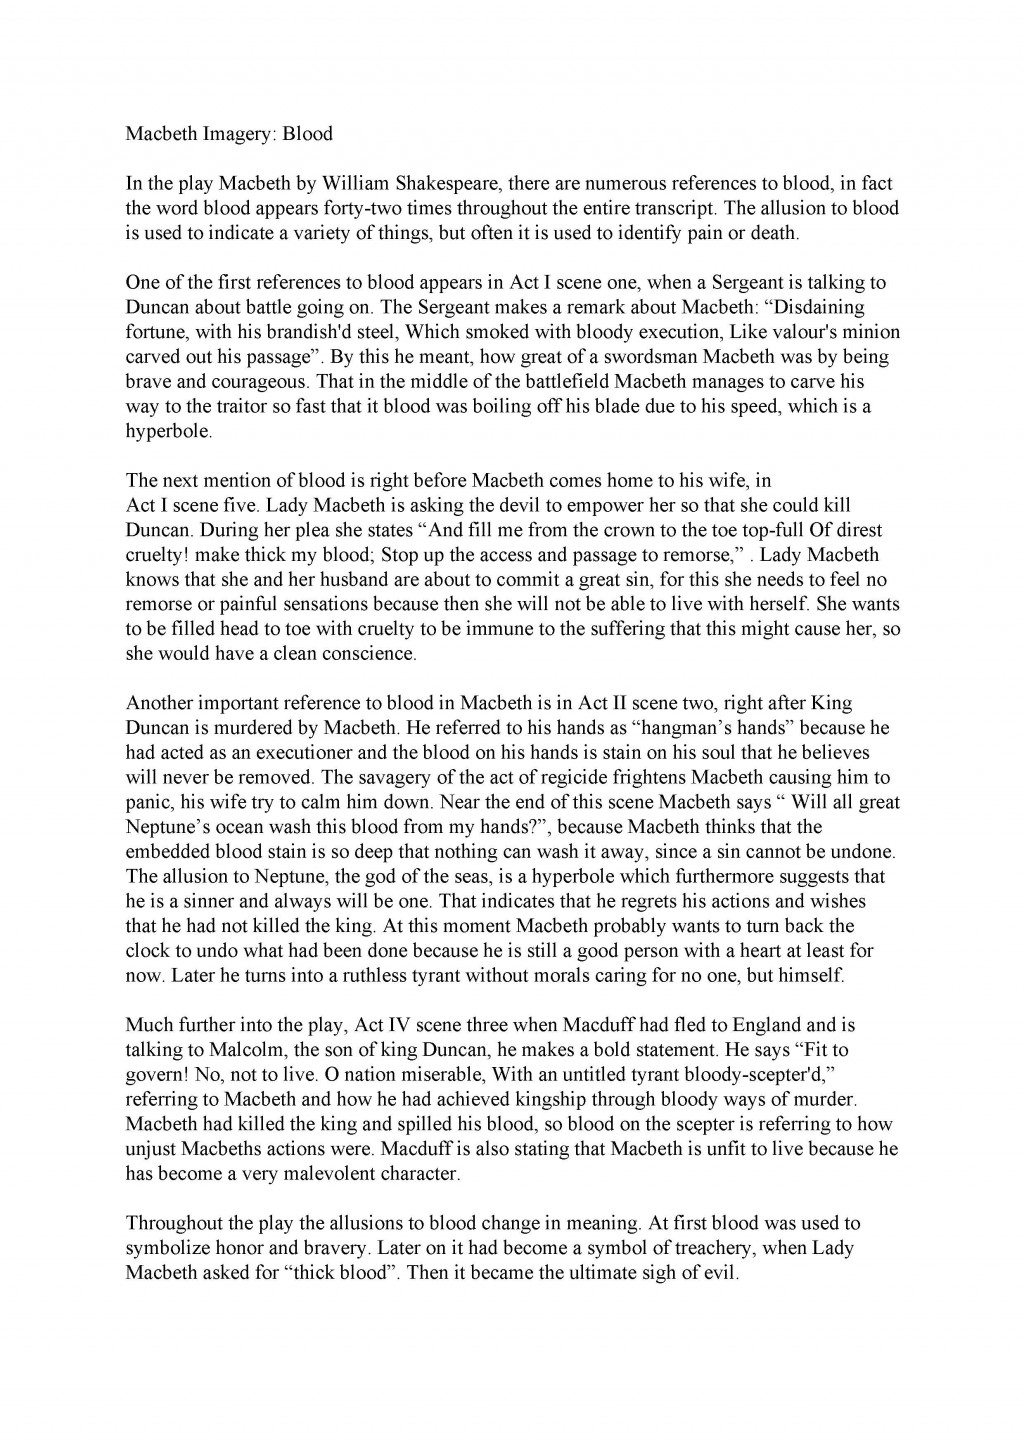 017 Macbeth Essay Sample How To Essays Excellent For 4th Grade Write Scholarships Large